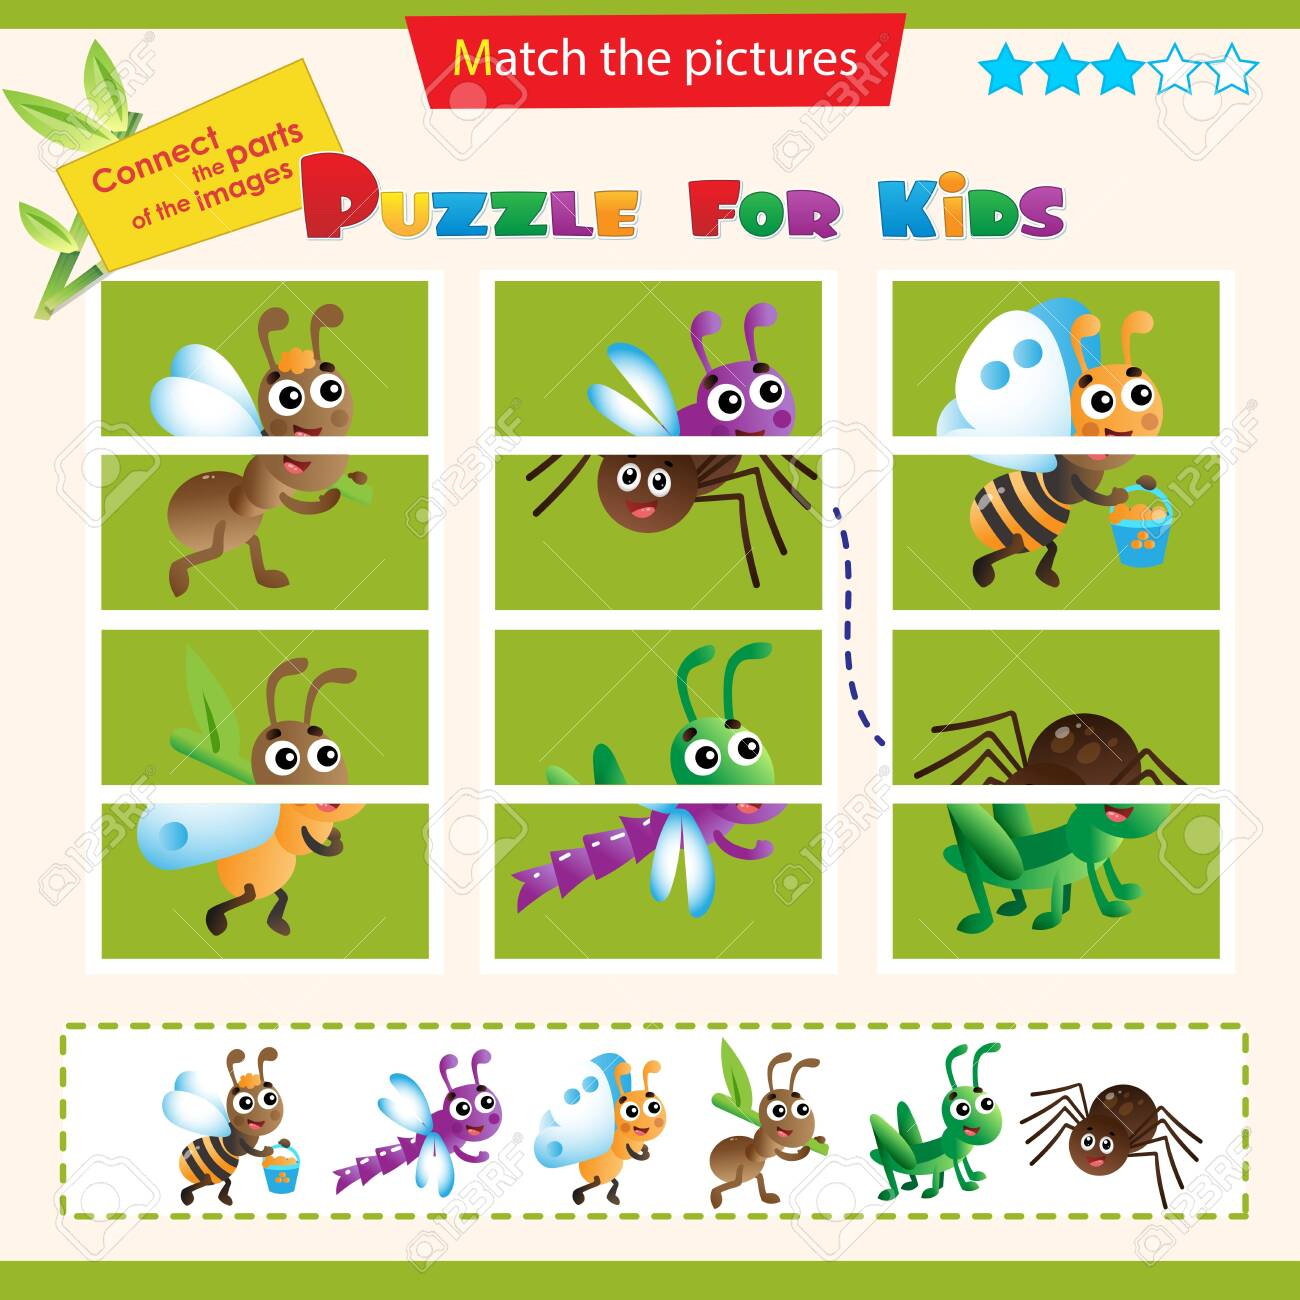 Matching game for children. Puzzle for kids. Match the right parts of the images. Insects. Ant, grasshopper, bee, dragonfly, spider, butterfly. - 145086058